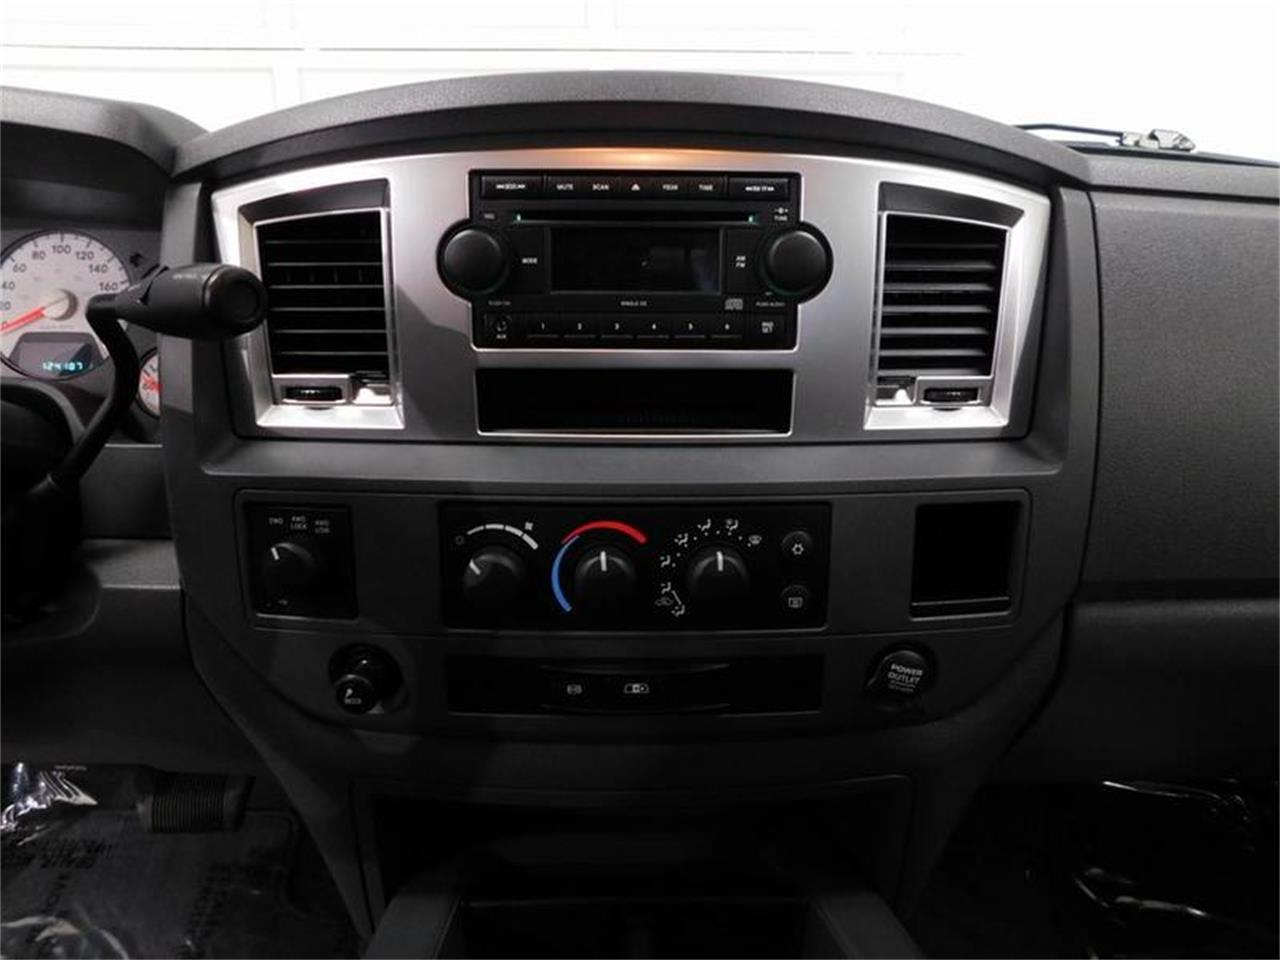 2009 Dodge Ram 3500 for sale in Hamburg, NY – photo 64